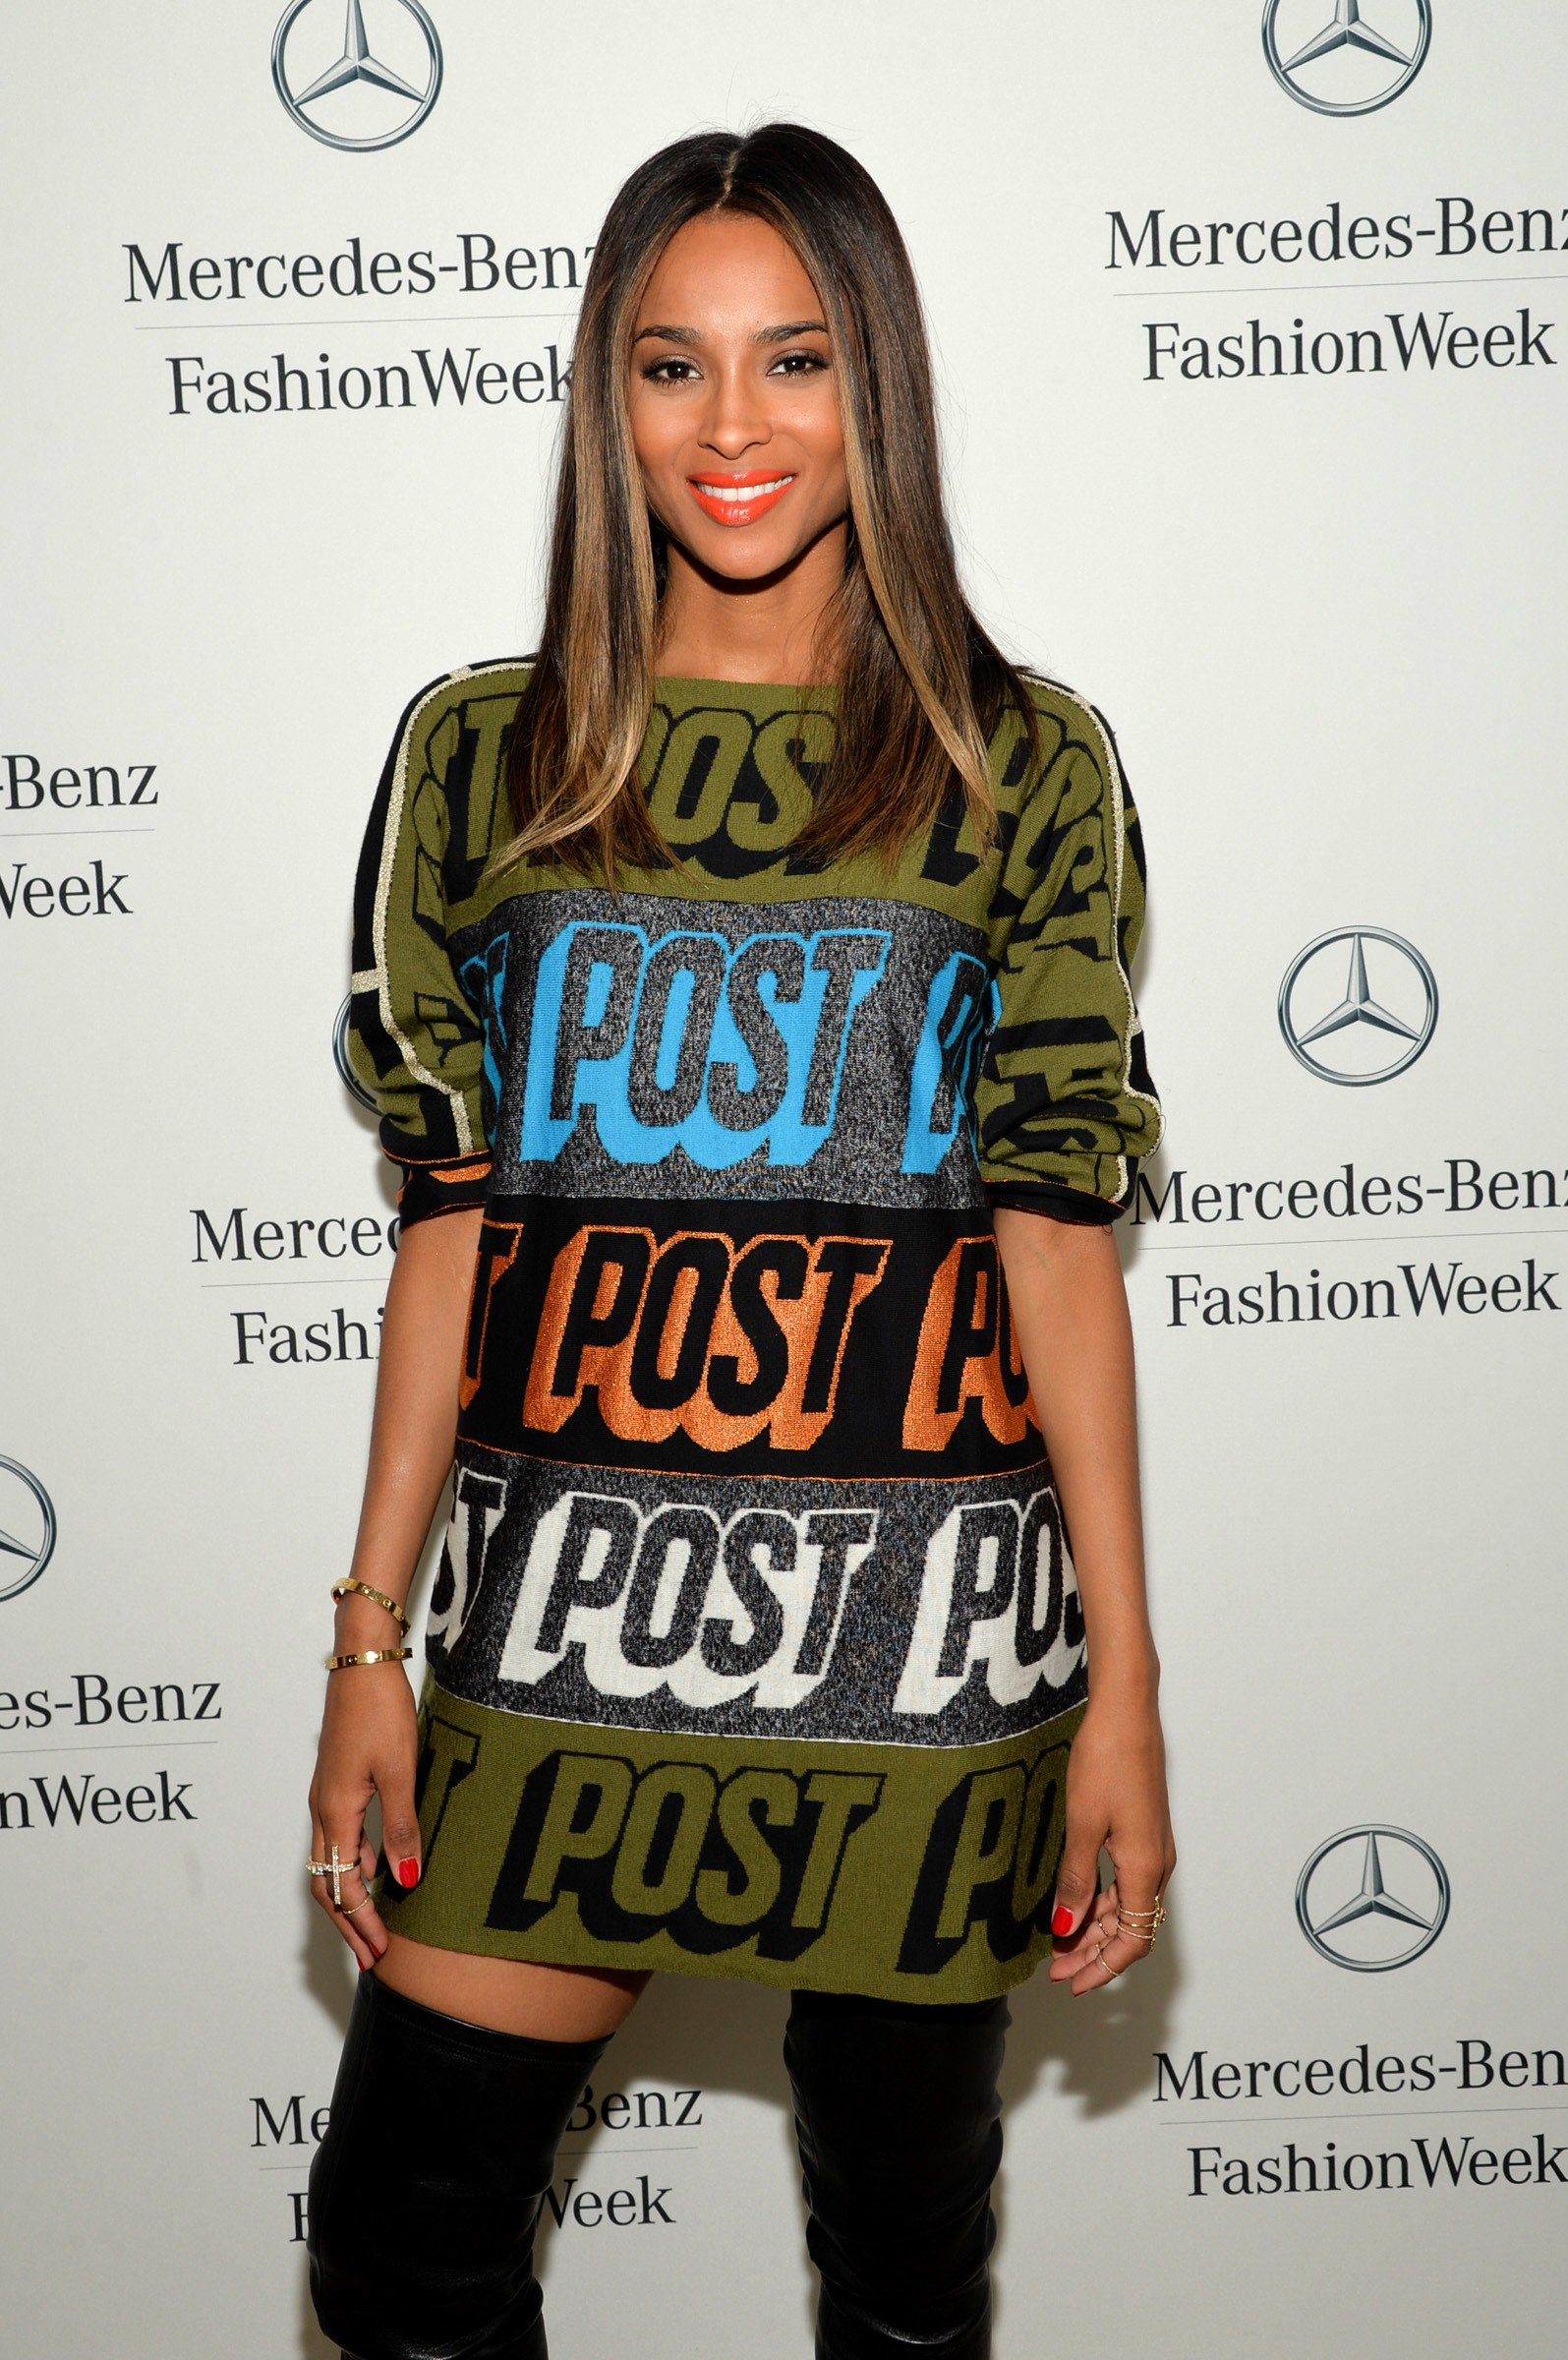 Ciara at the Mercedes-Benz Star Lounge on September 9, 2013 in New York City | Photo: Getty Images